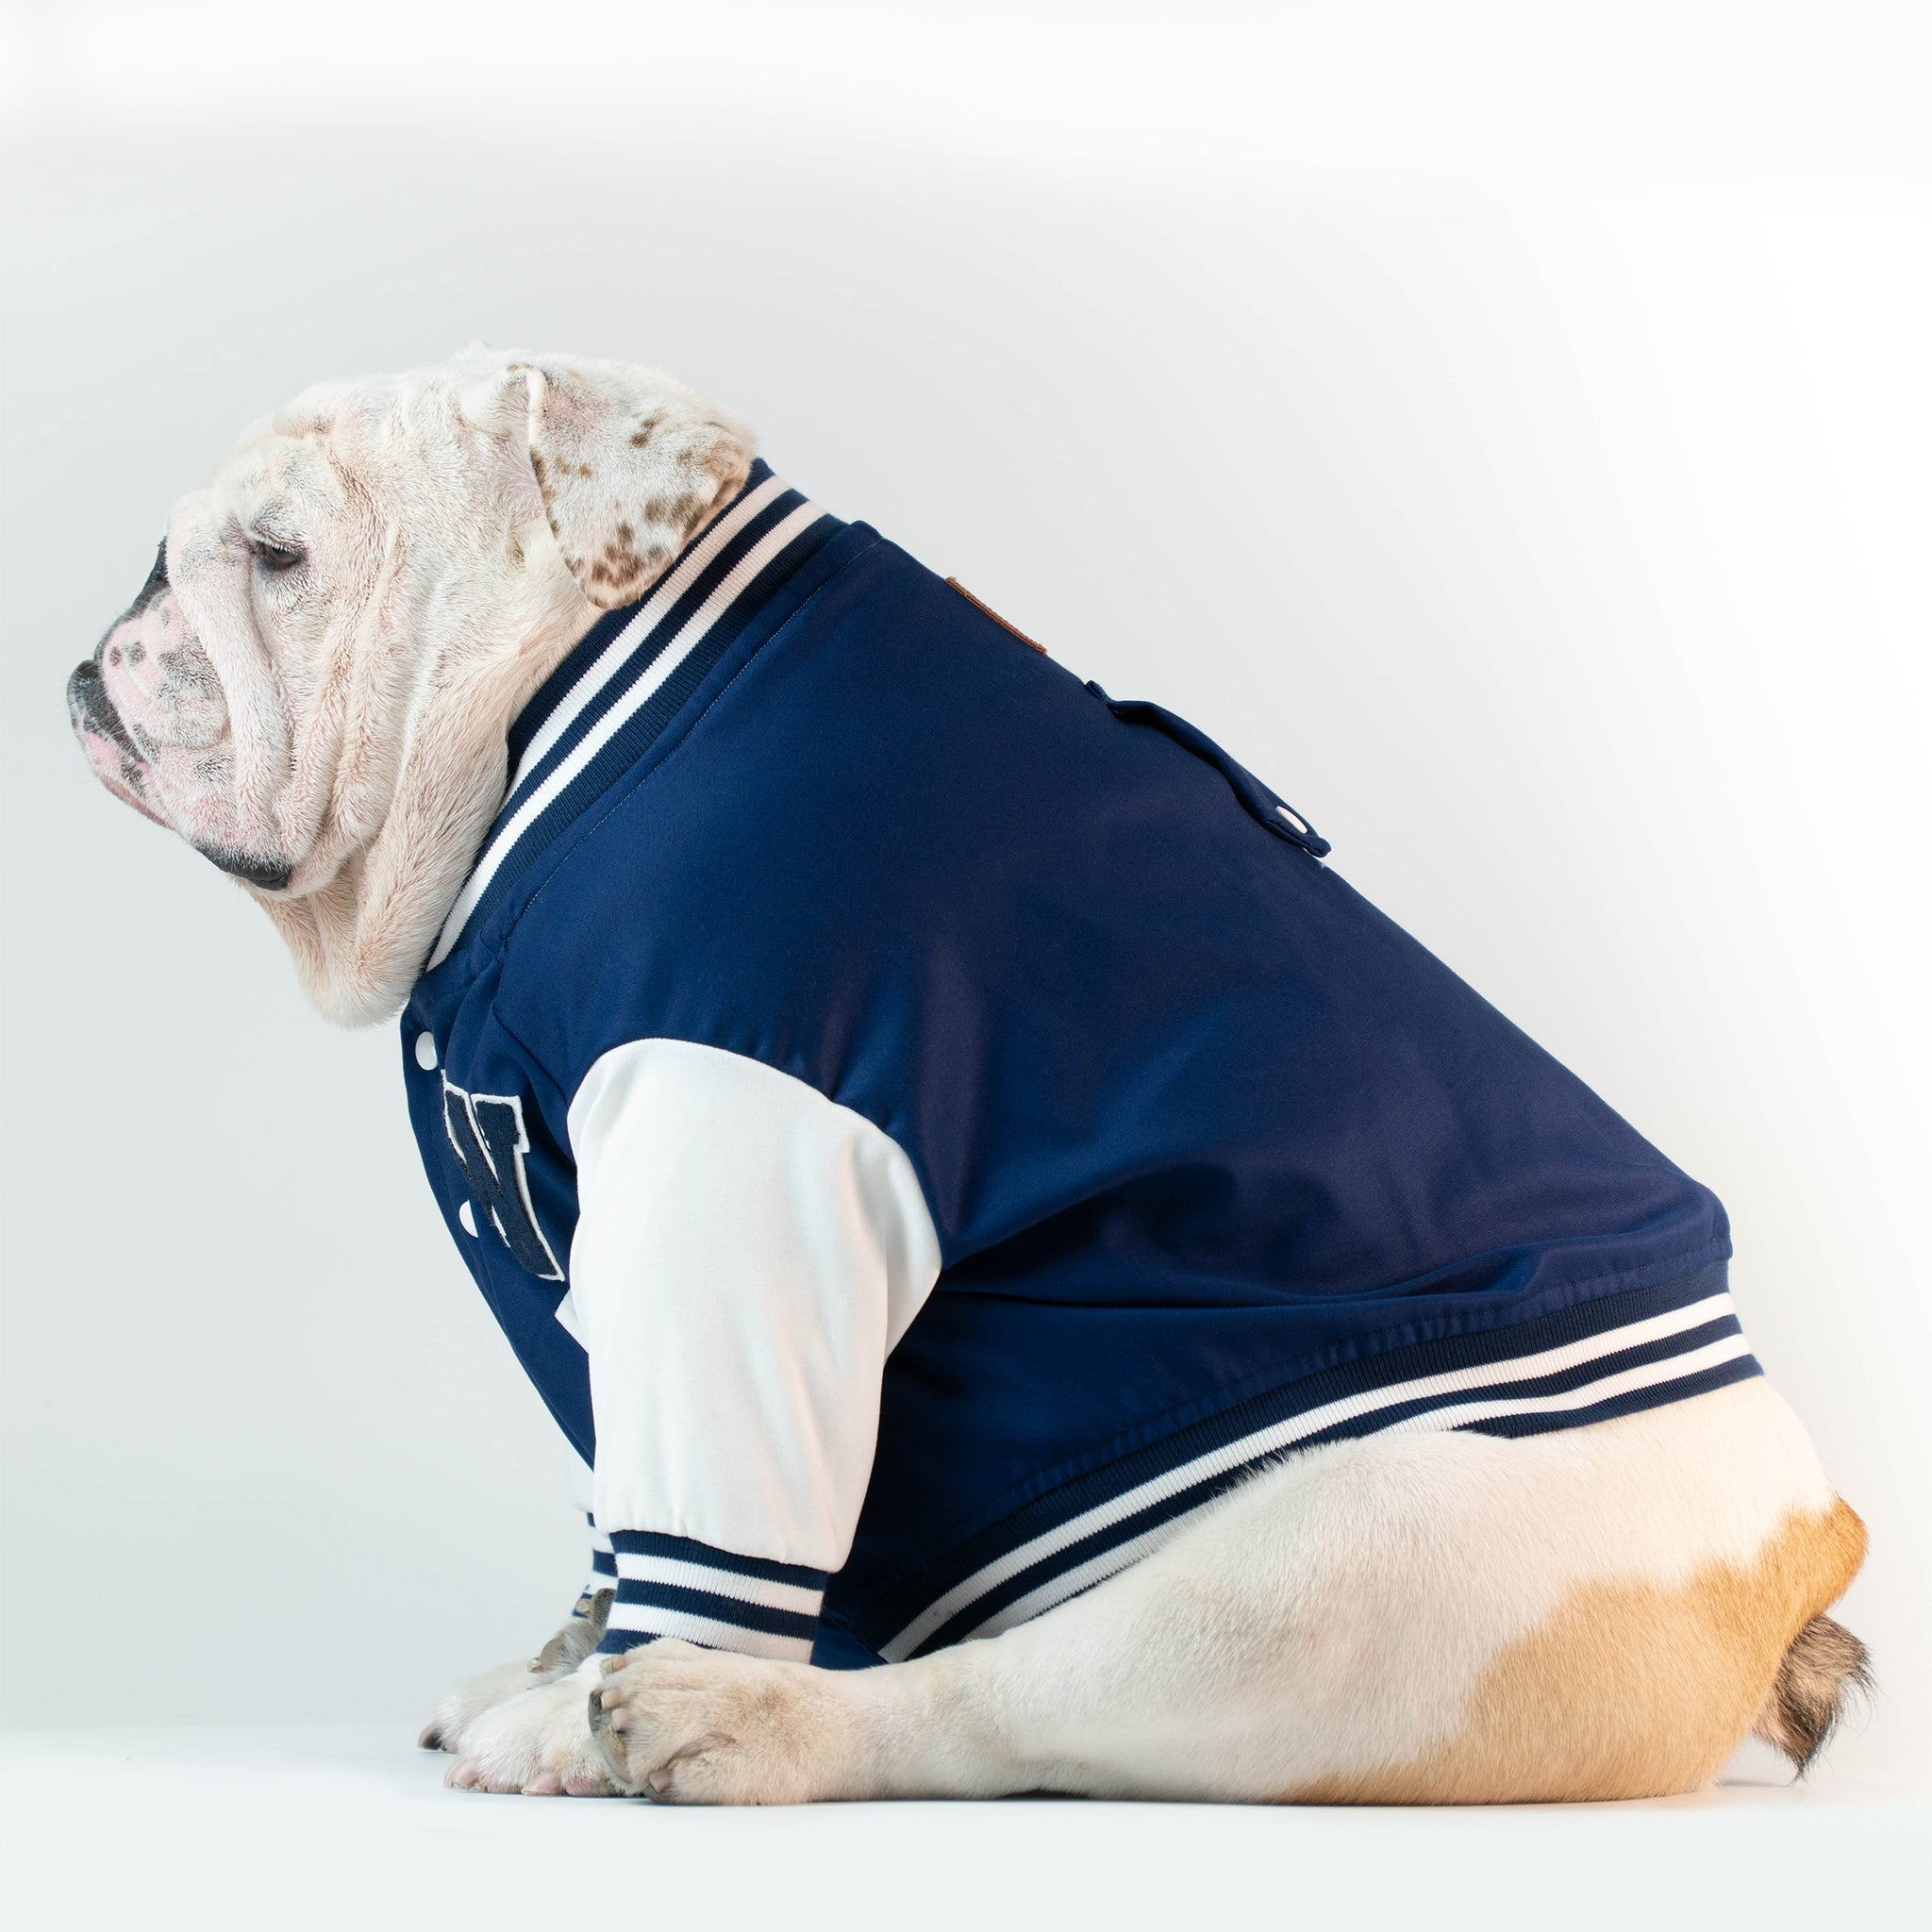 WONTON VARSITY BOMBER Jacket in navy (Customizable Chest Letter) - WontonCollection